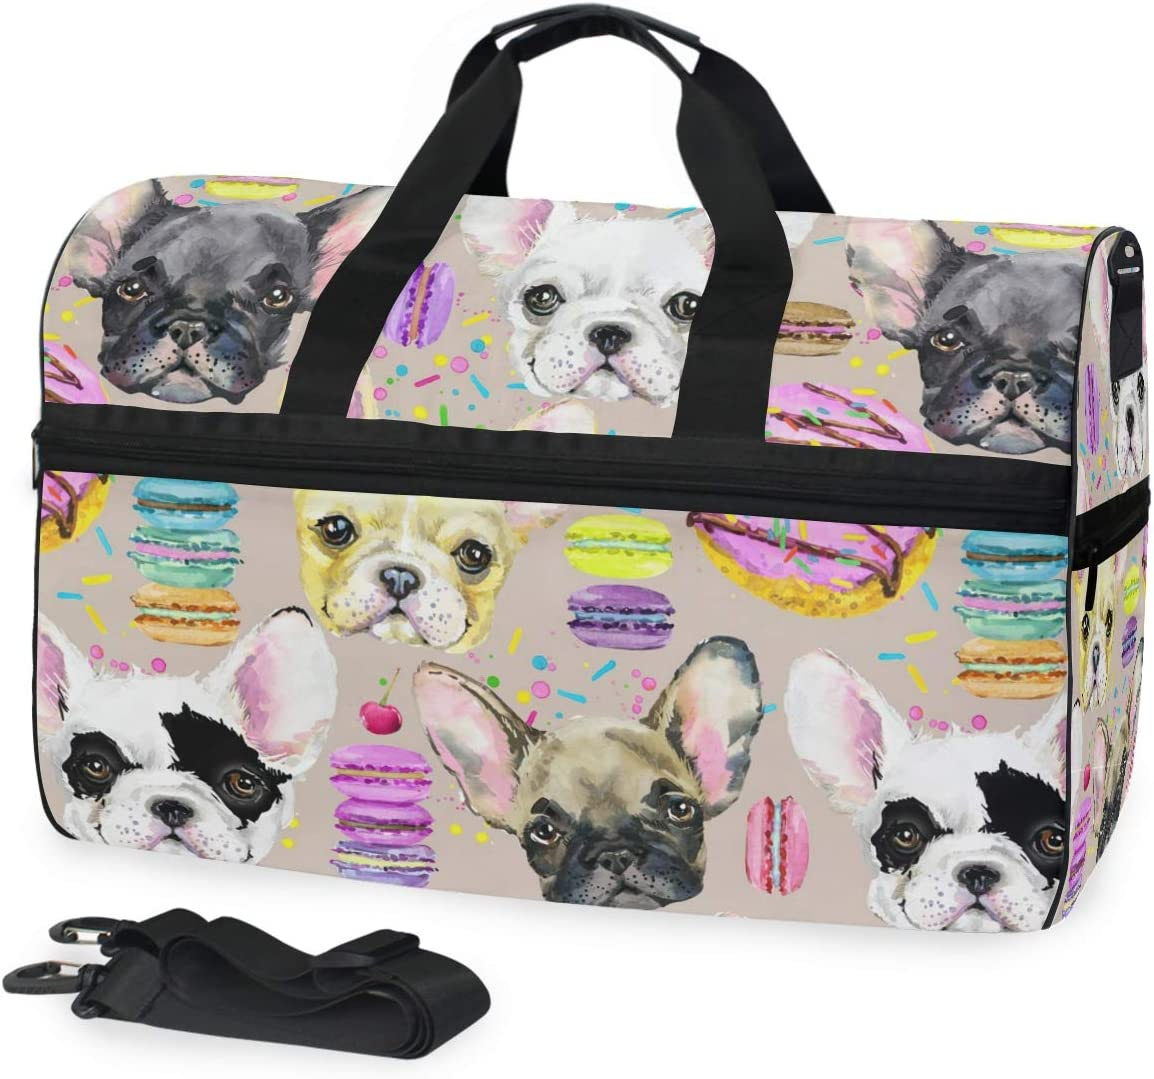 Senya Colorful Funny Puppy Dog Sports Gym Duffel Bag Travel Luggage Handbag Shoulder Bag with Shoes Compartment for Men Women